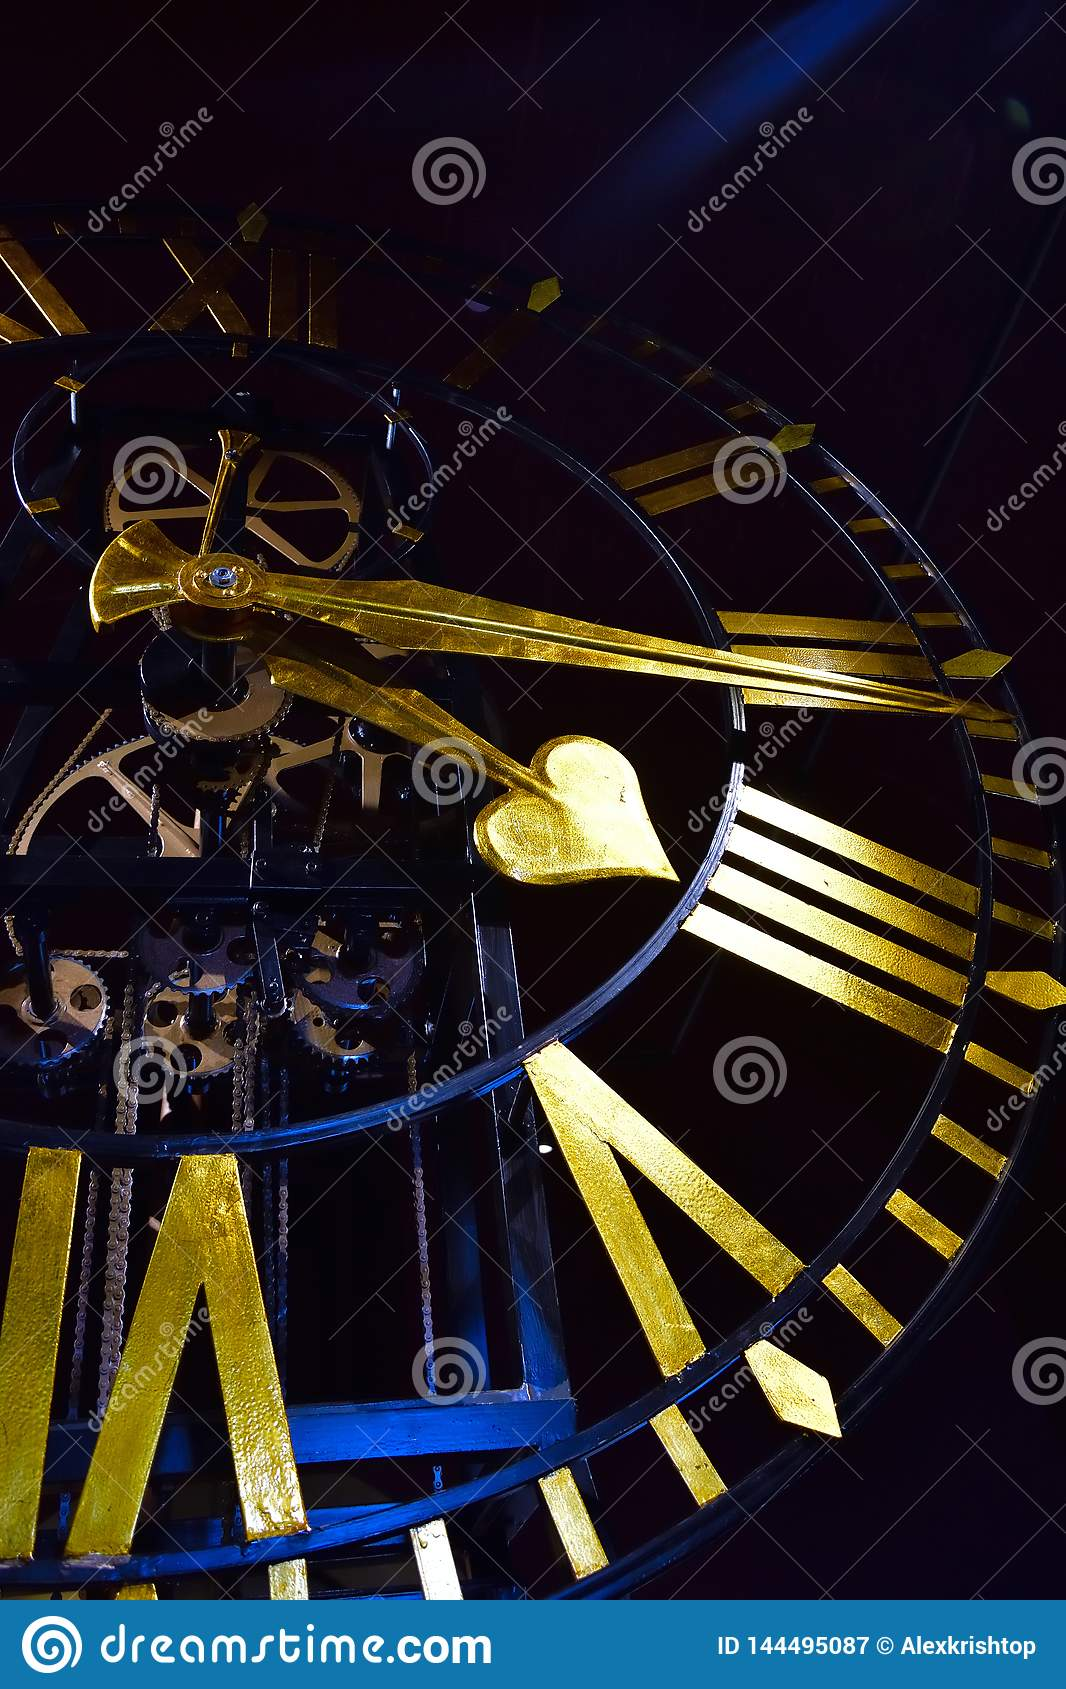 Close-up of ancient dark skeleton clock with golden hands and roman numerals